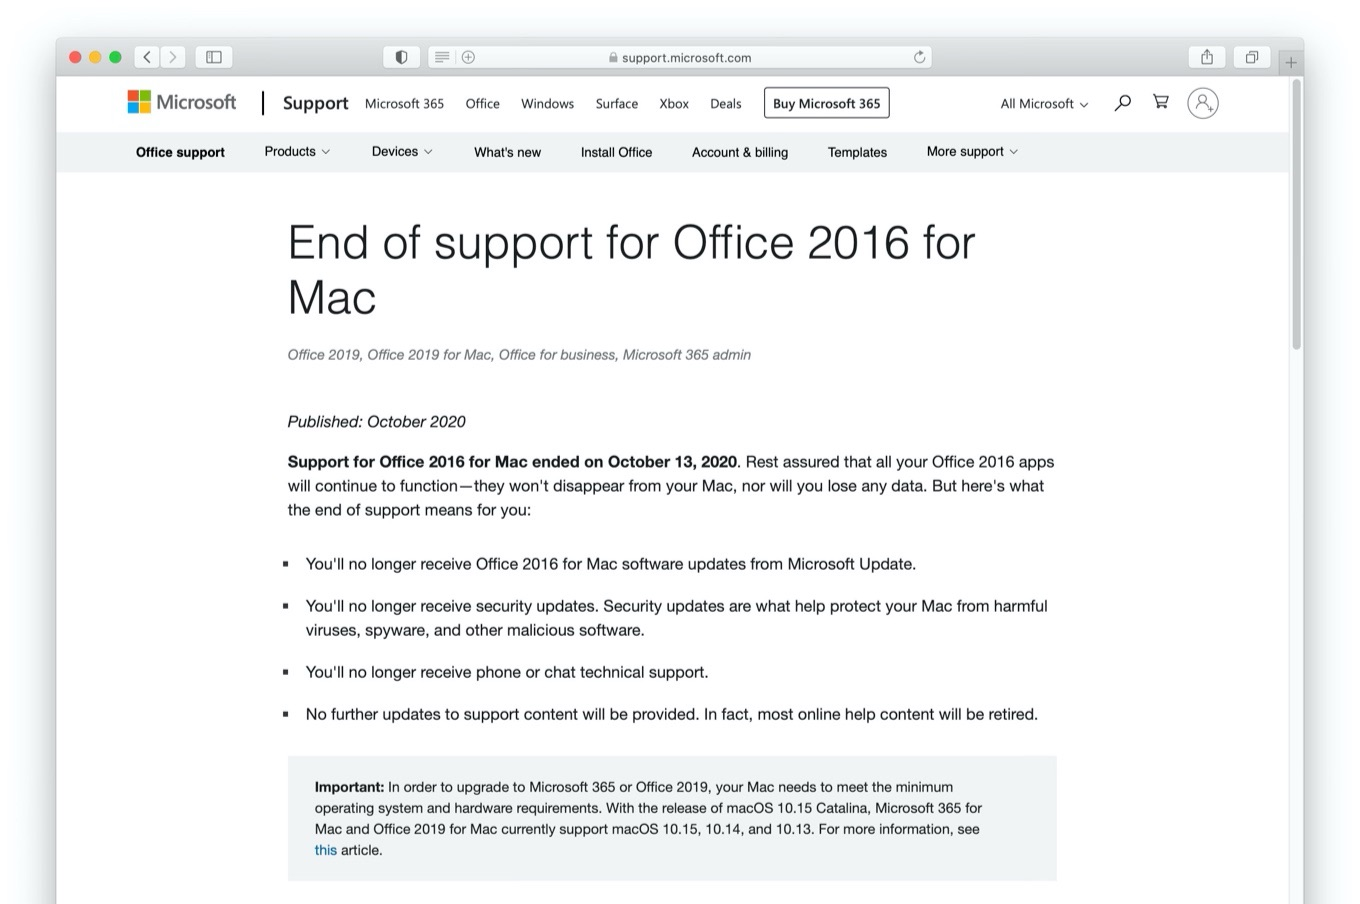 End of support for Office 2016 for Mac